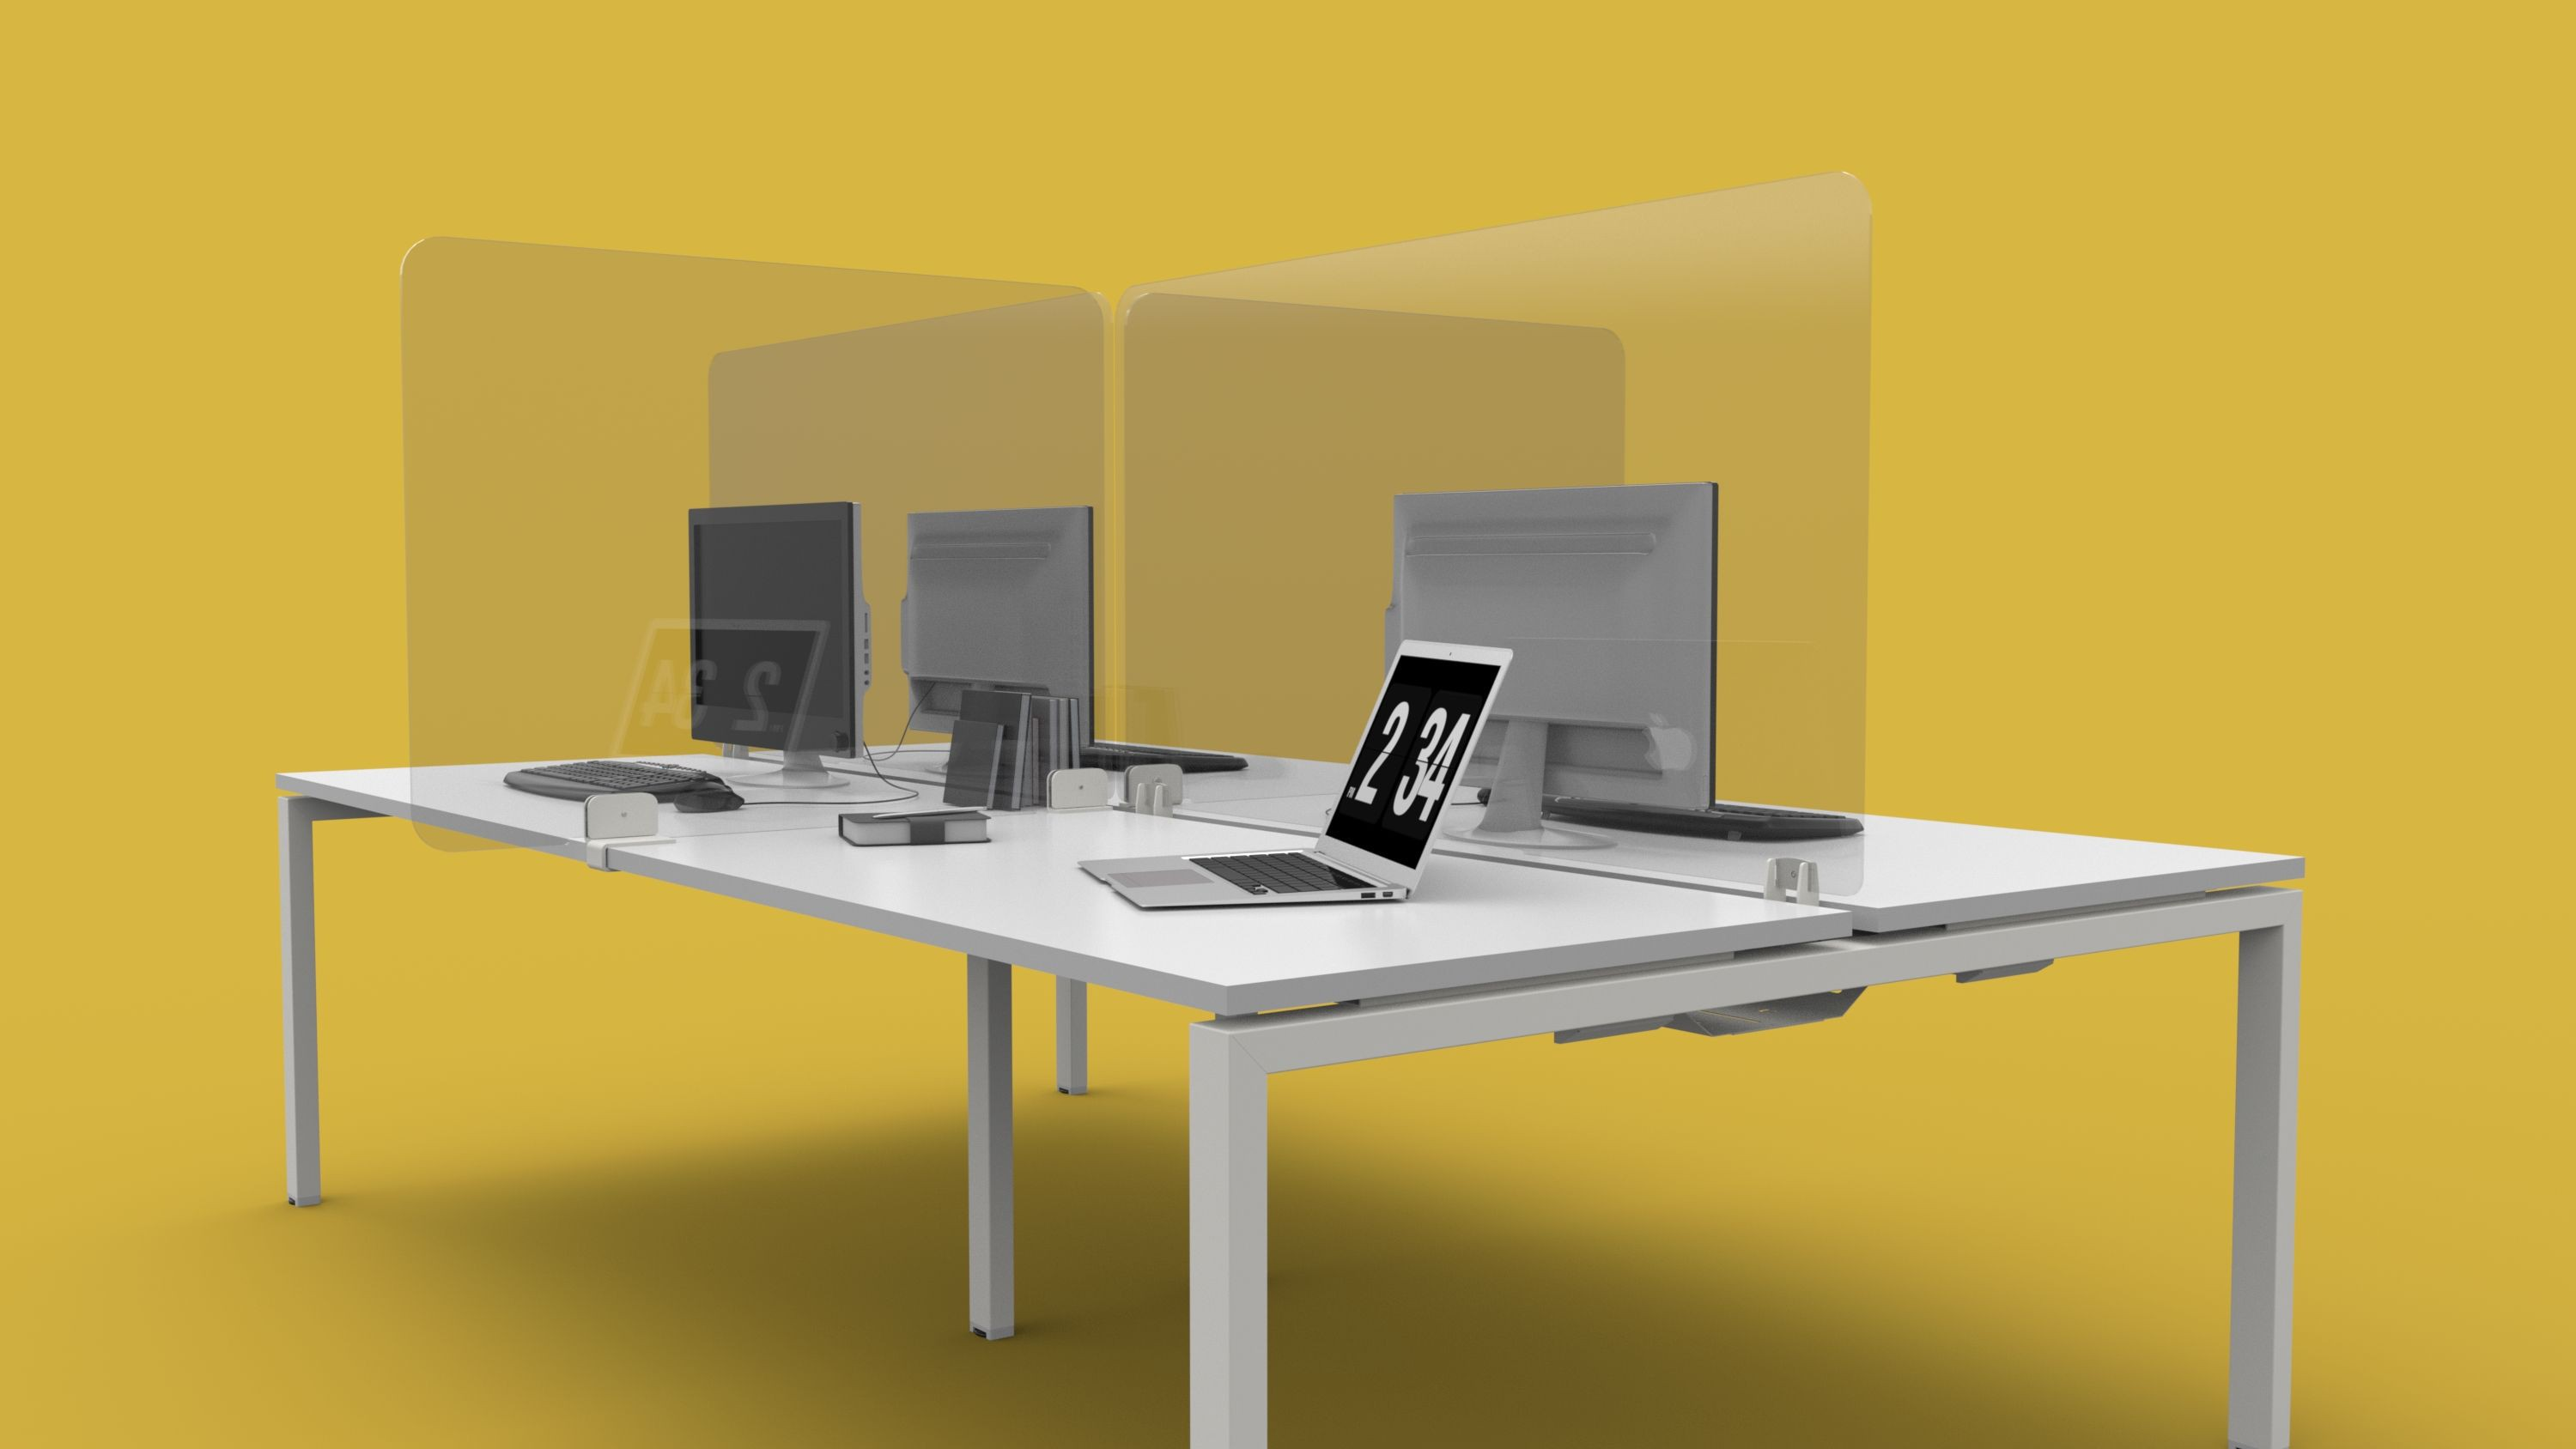 Desk Mounted 5mm & 8mm Acrylic Barrier RETURN Screen - H750 - Sizes Available: 800mm - will fit 600 Deep Desk 900mm - will fit 680/700mm Deep Desk 1000mm - will fit 780/800mm deep desk Clamps Sold Separately